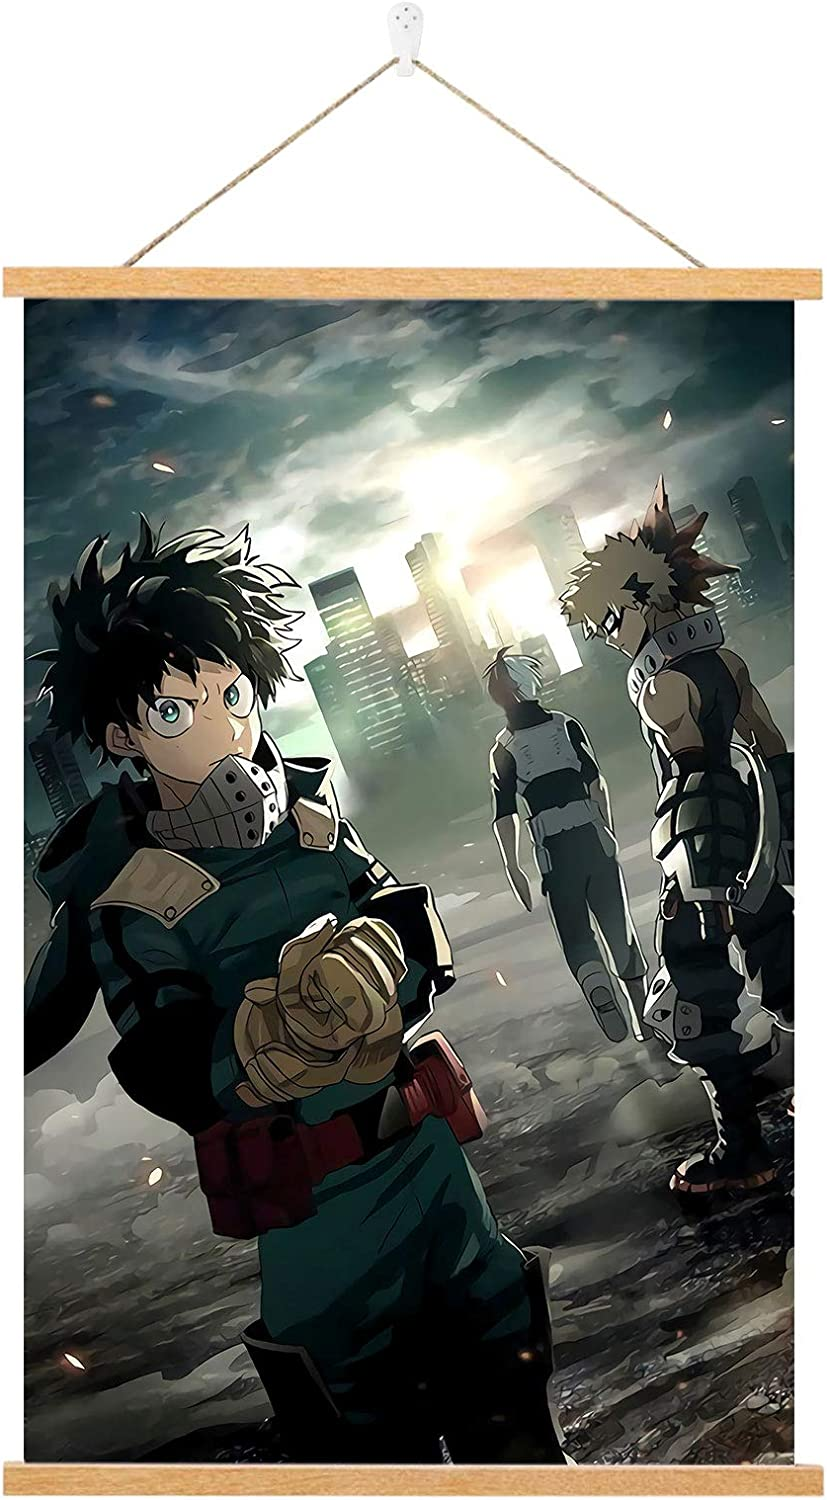 SEAREE My Hero Academia Poster - Anime Wall Scroll Poster - 16 x 24in Hd Canvas Hanging Paintings Wall Art Decor,with 16Inch Powerful Magnet Wood Poster Hanger and Seamless Hook.